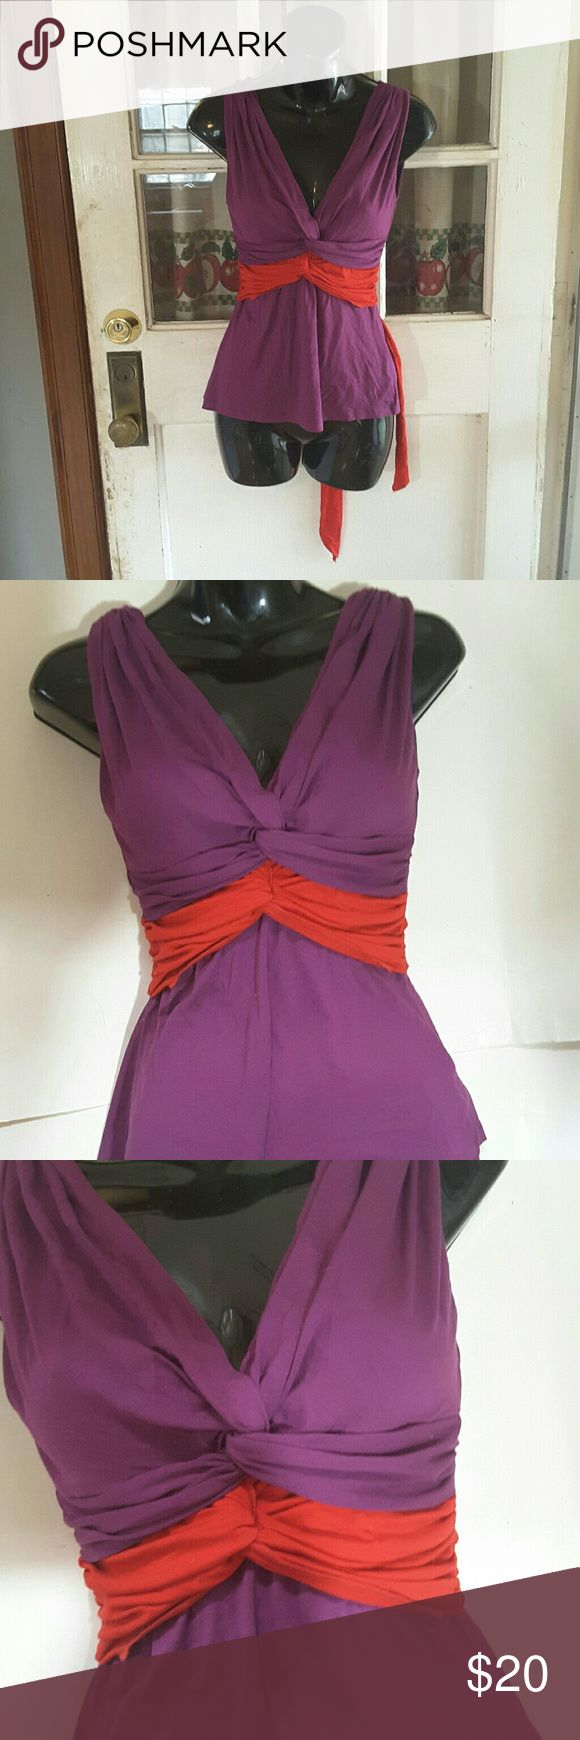 Bebe top Purple double twist top stretchy material bebe Tops